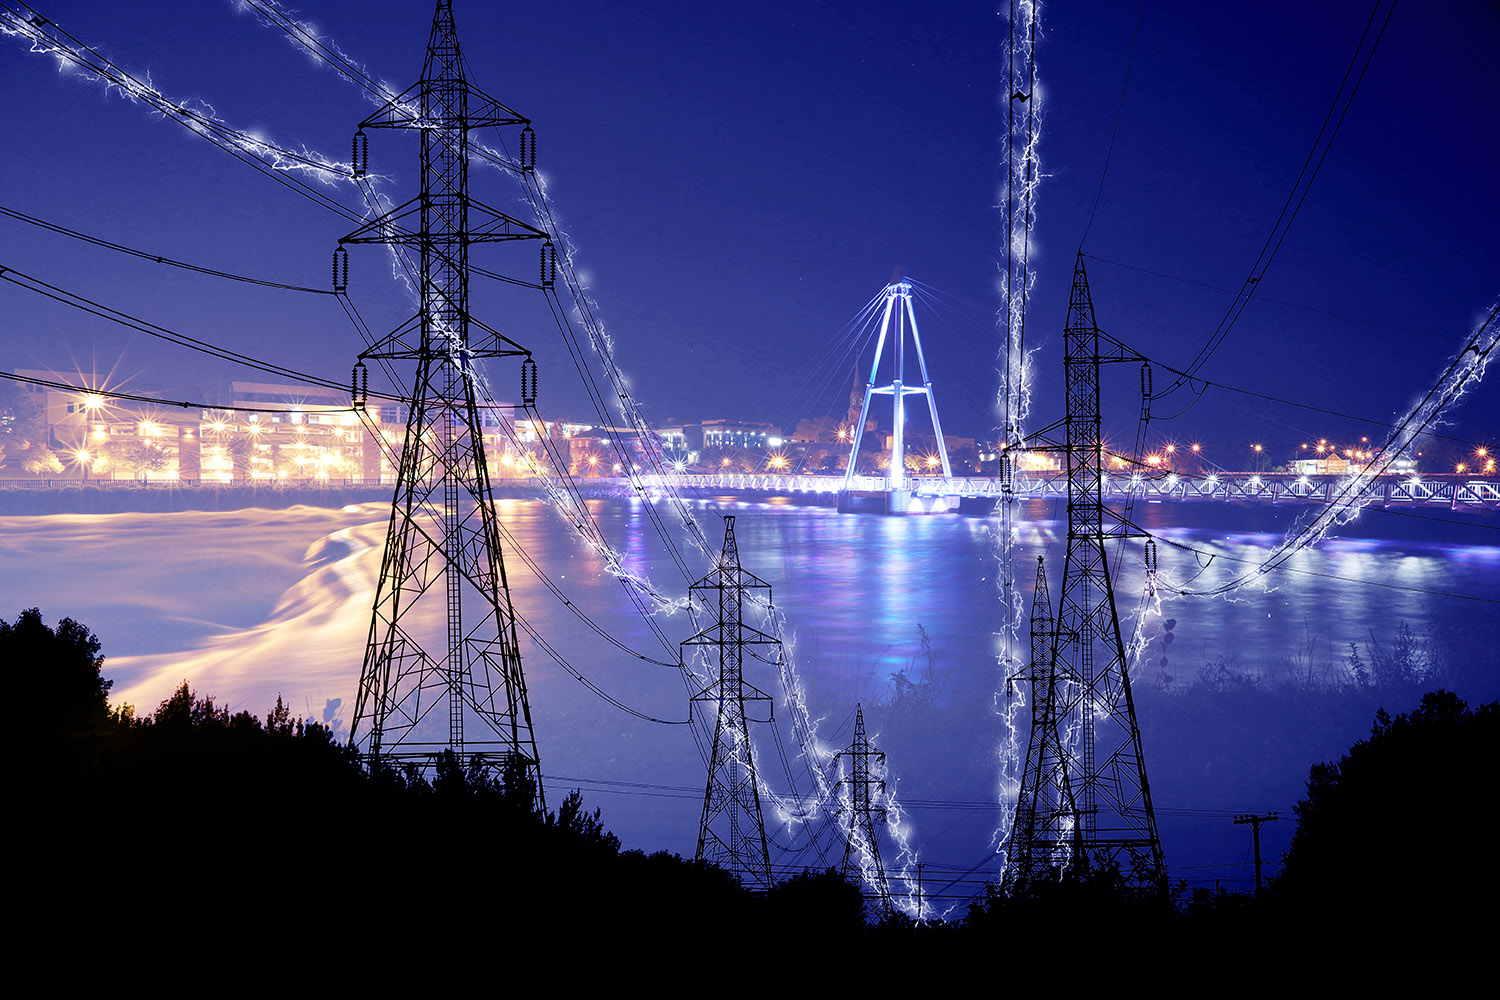 Small Town Electrification at Night in Blue - Royalty-Free Stock Imagery